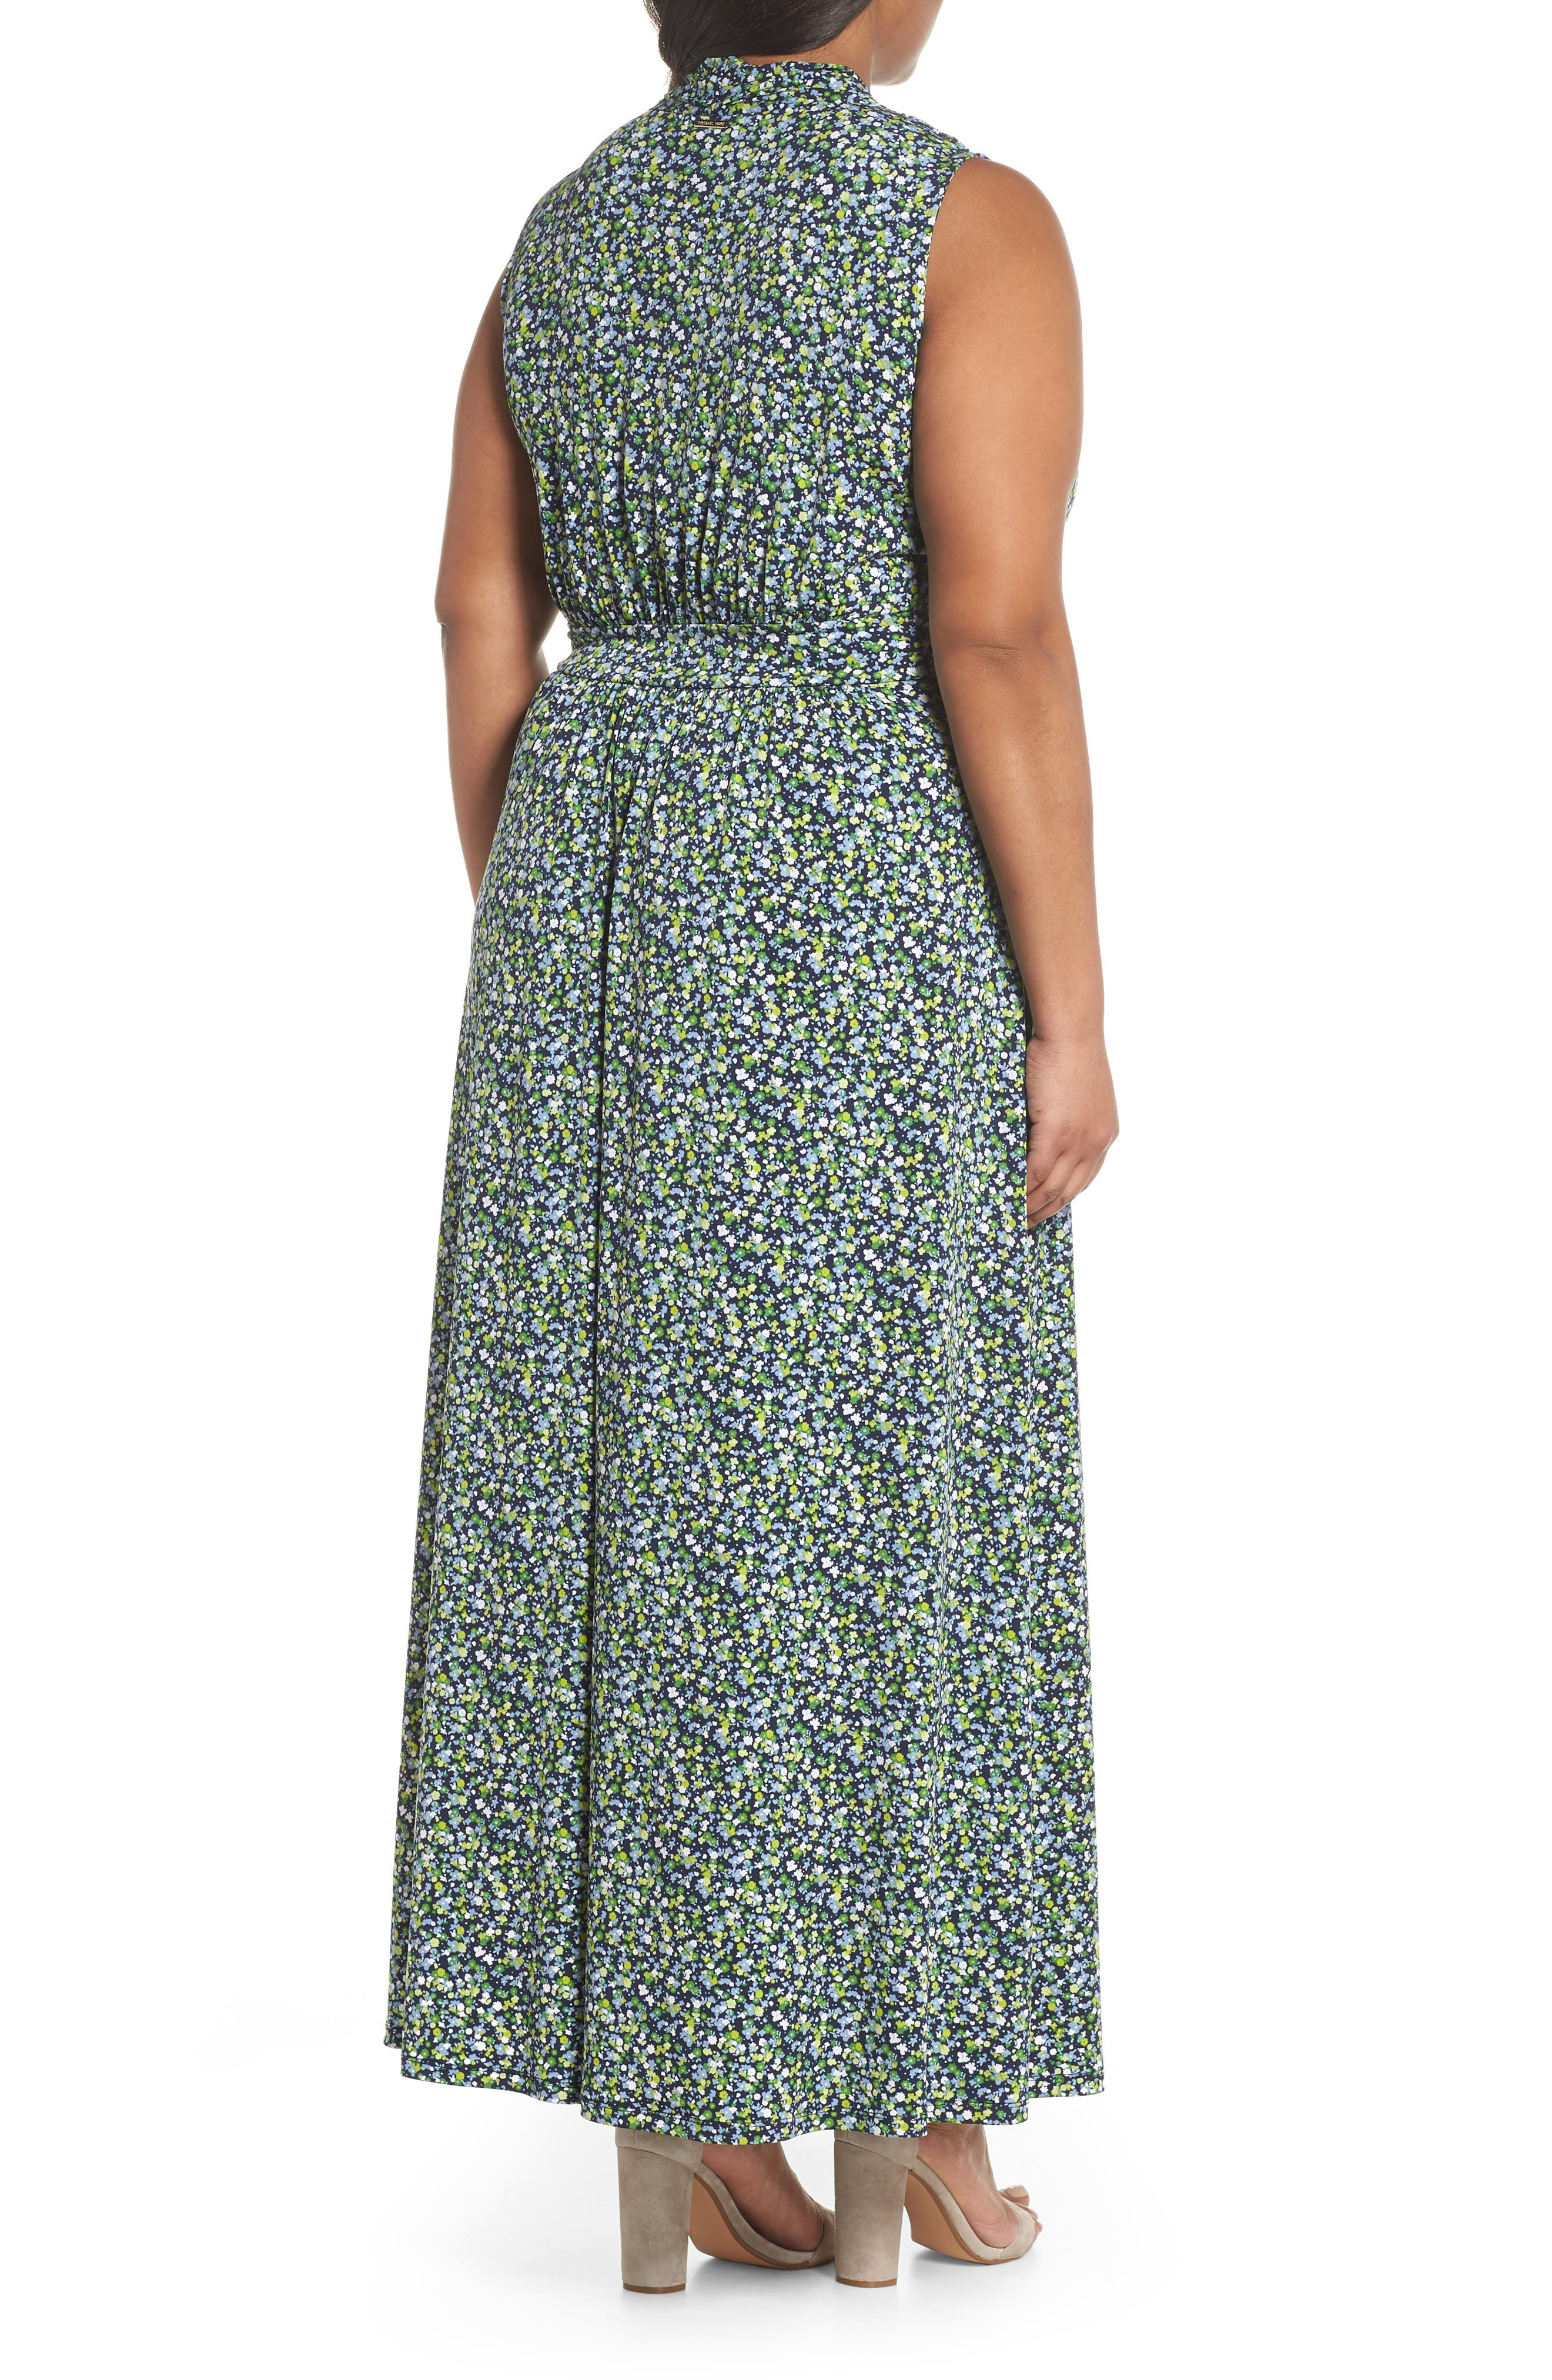 Wildflowers Maxi Dress,                             Alternate thumbnail 2, color,                             462